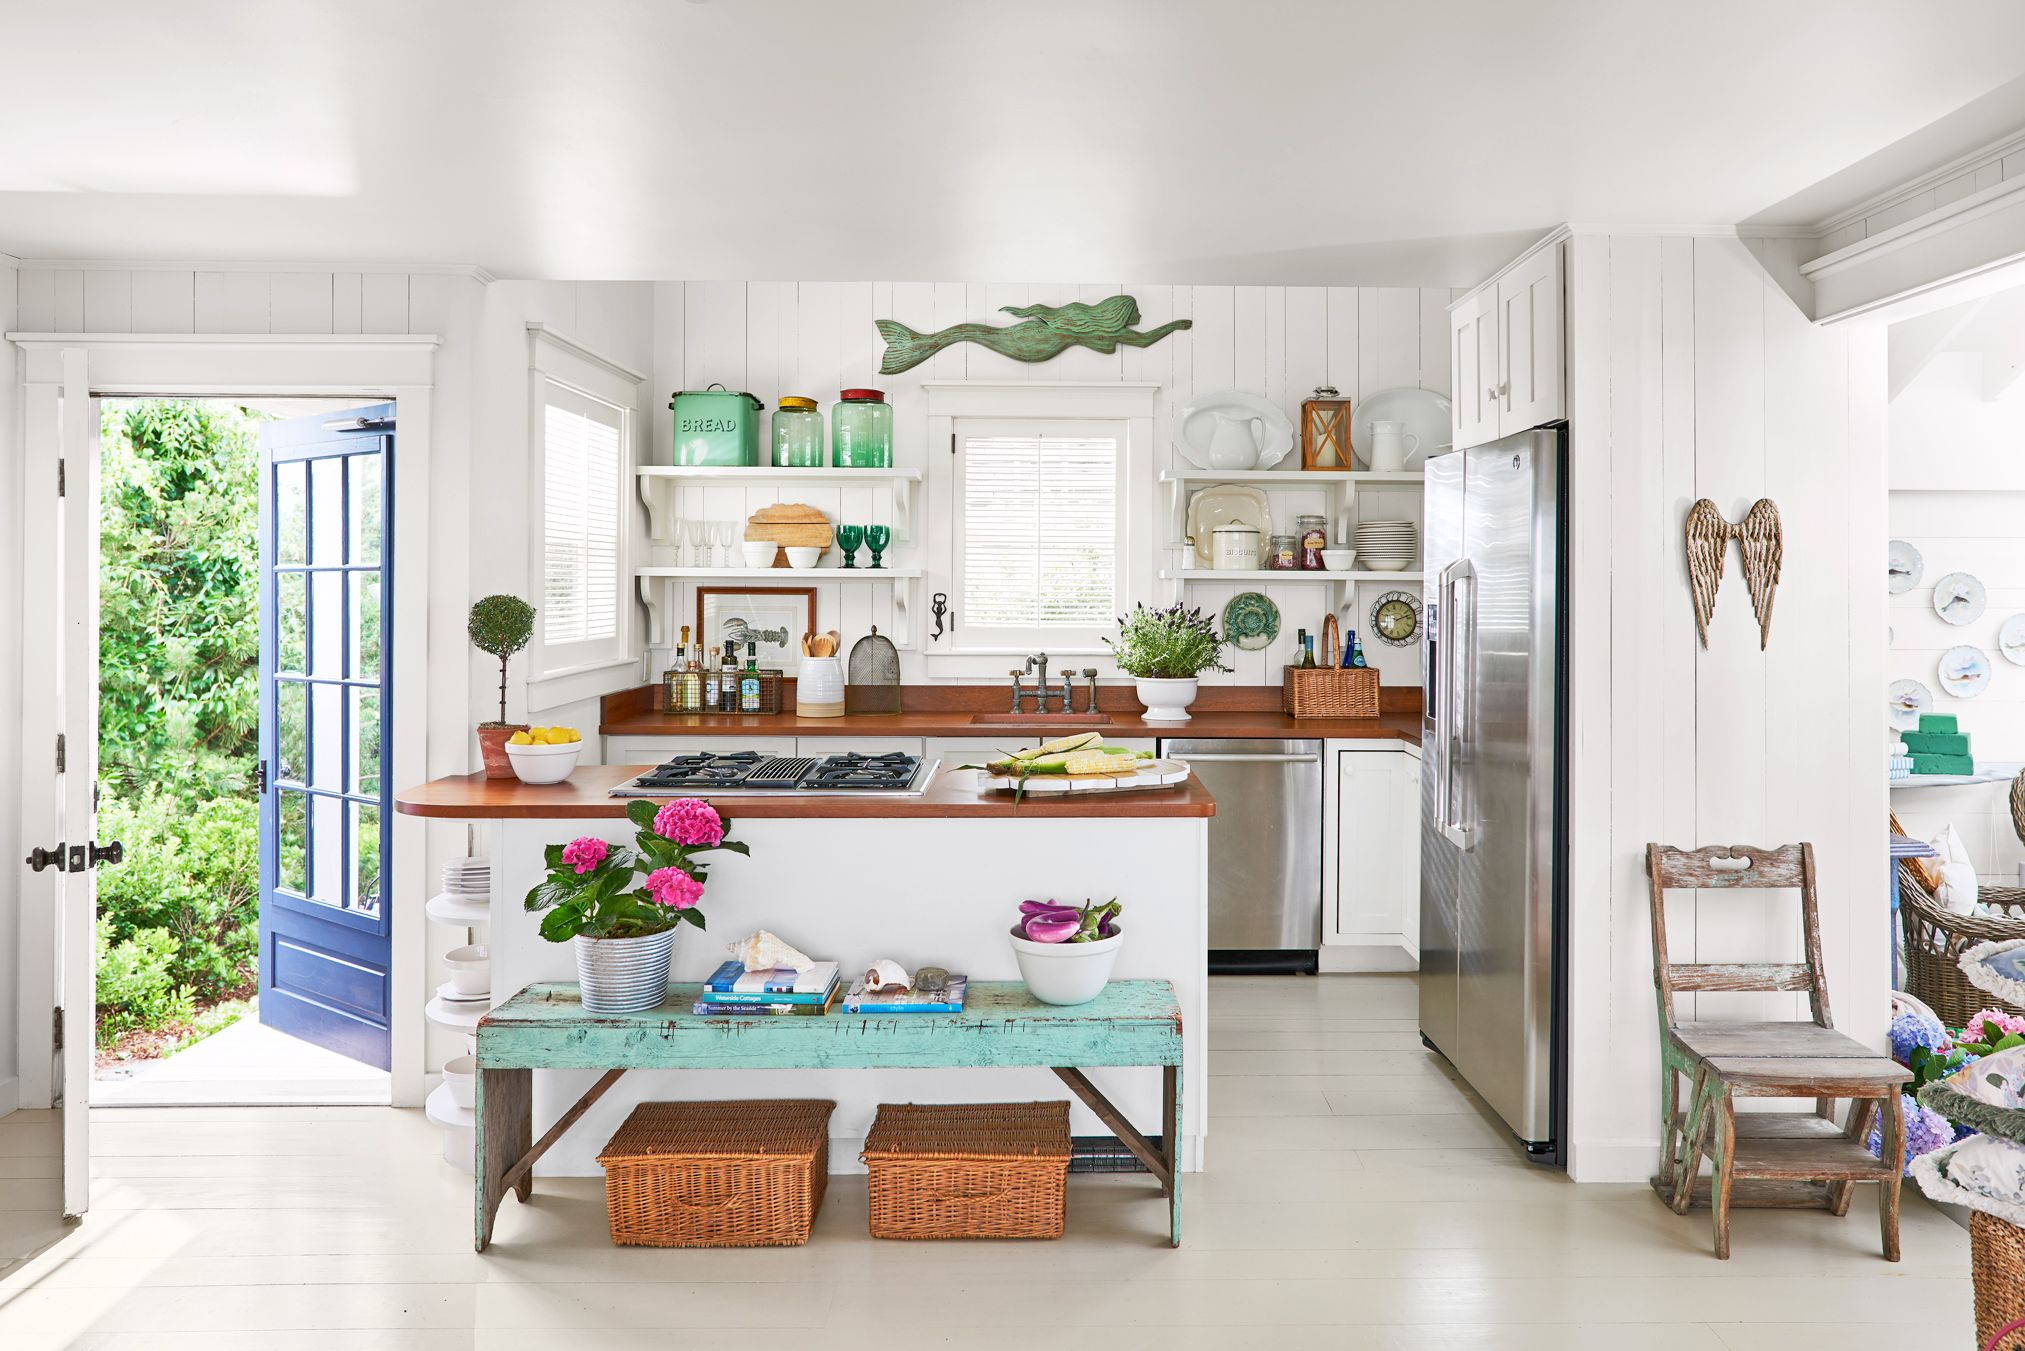 32 Ideas for Decorating Above Kitchen Cabinets   Design for Top of ...